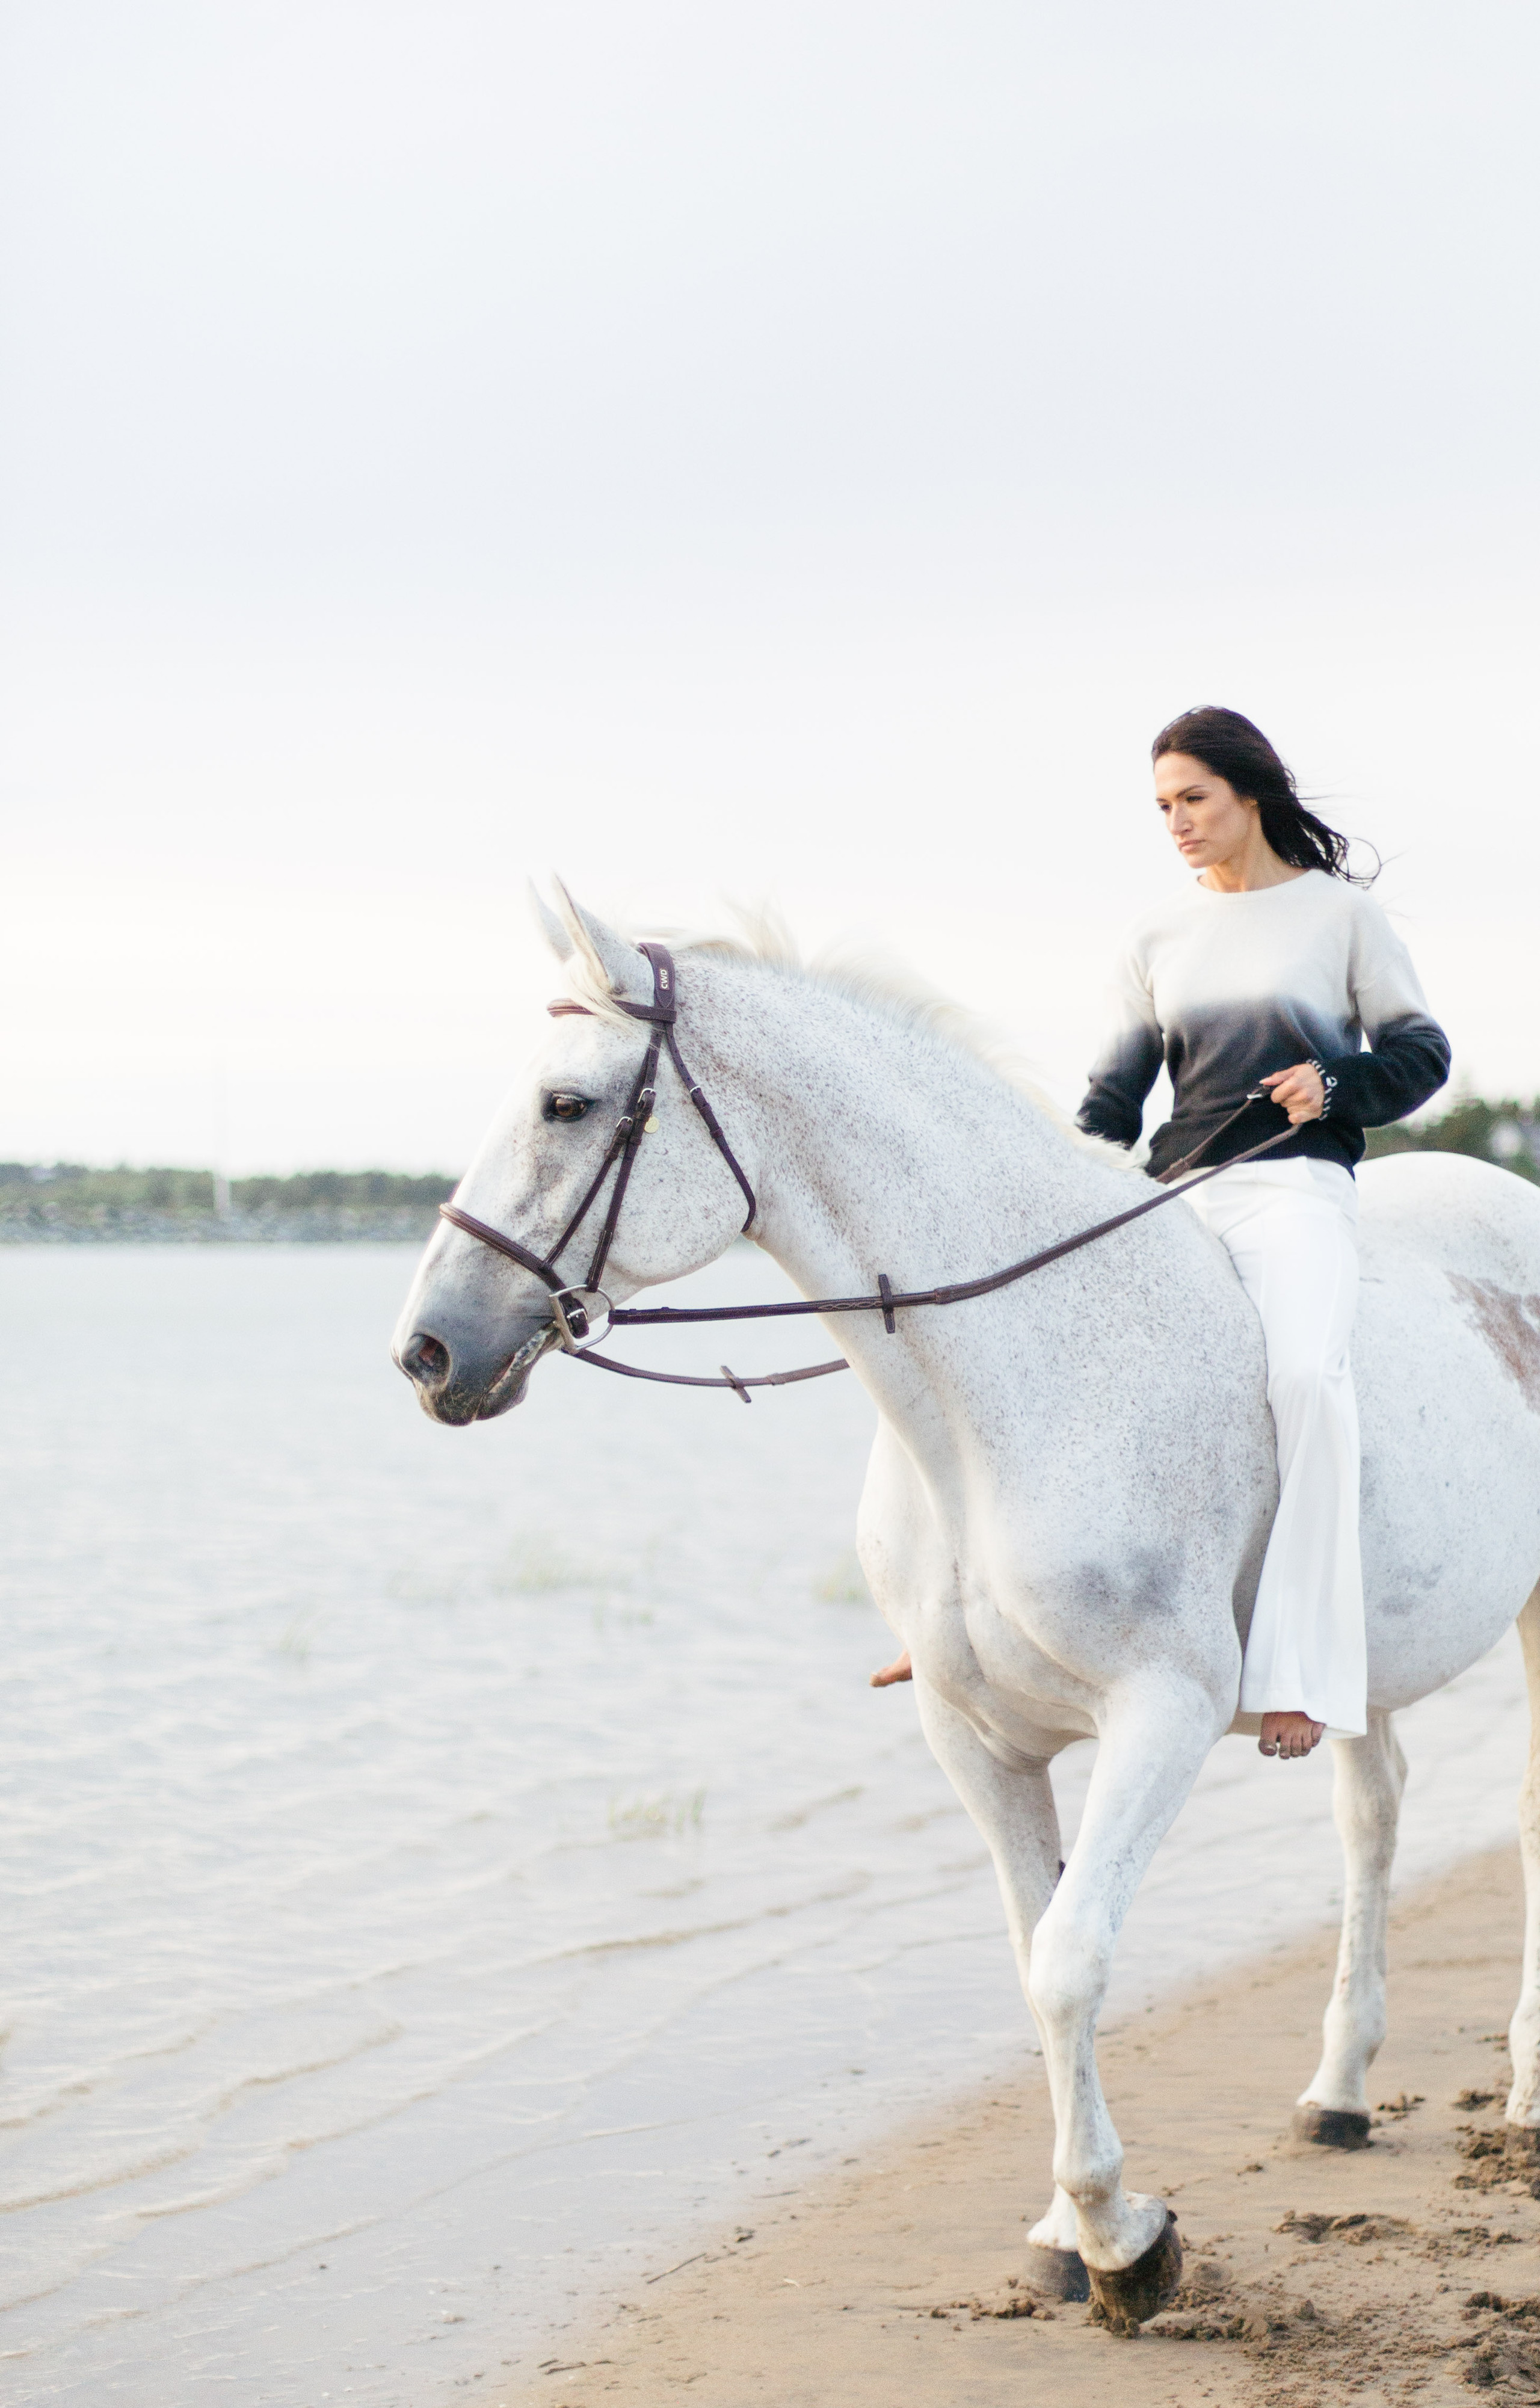 Equestrian session on the beach in Lawrencetown for Meraki Creative and Alexa Fairchild. Nova Scotia. Marie Roy Photography.